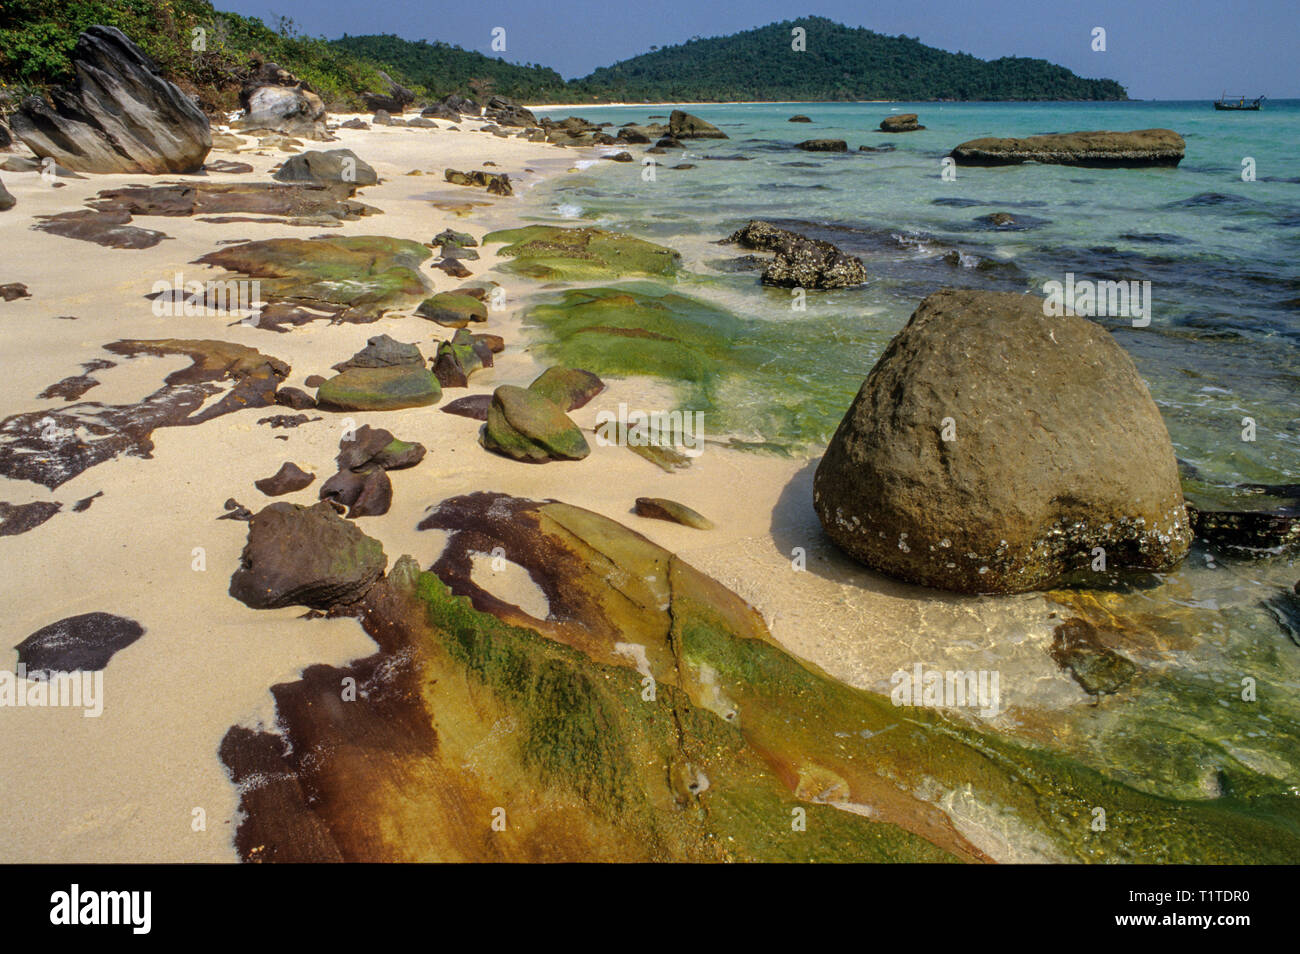 Wild shore in the South of Bai Sao beach in Phu Quoc island on Vietnam - Stock Image